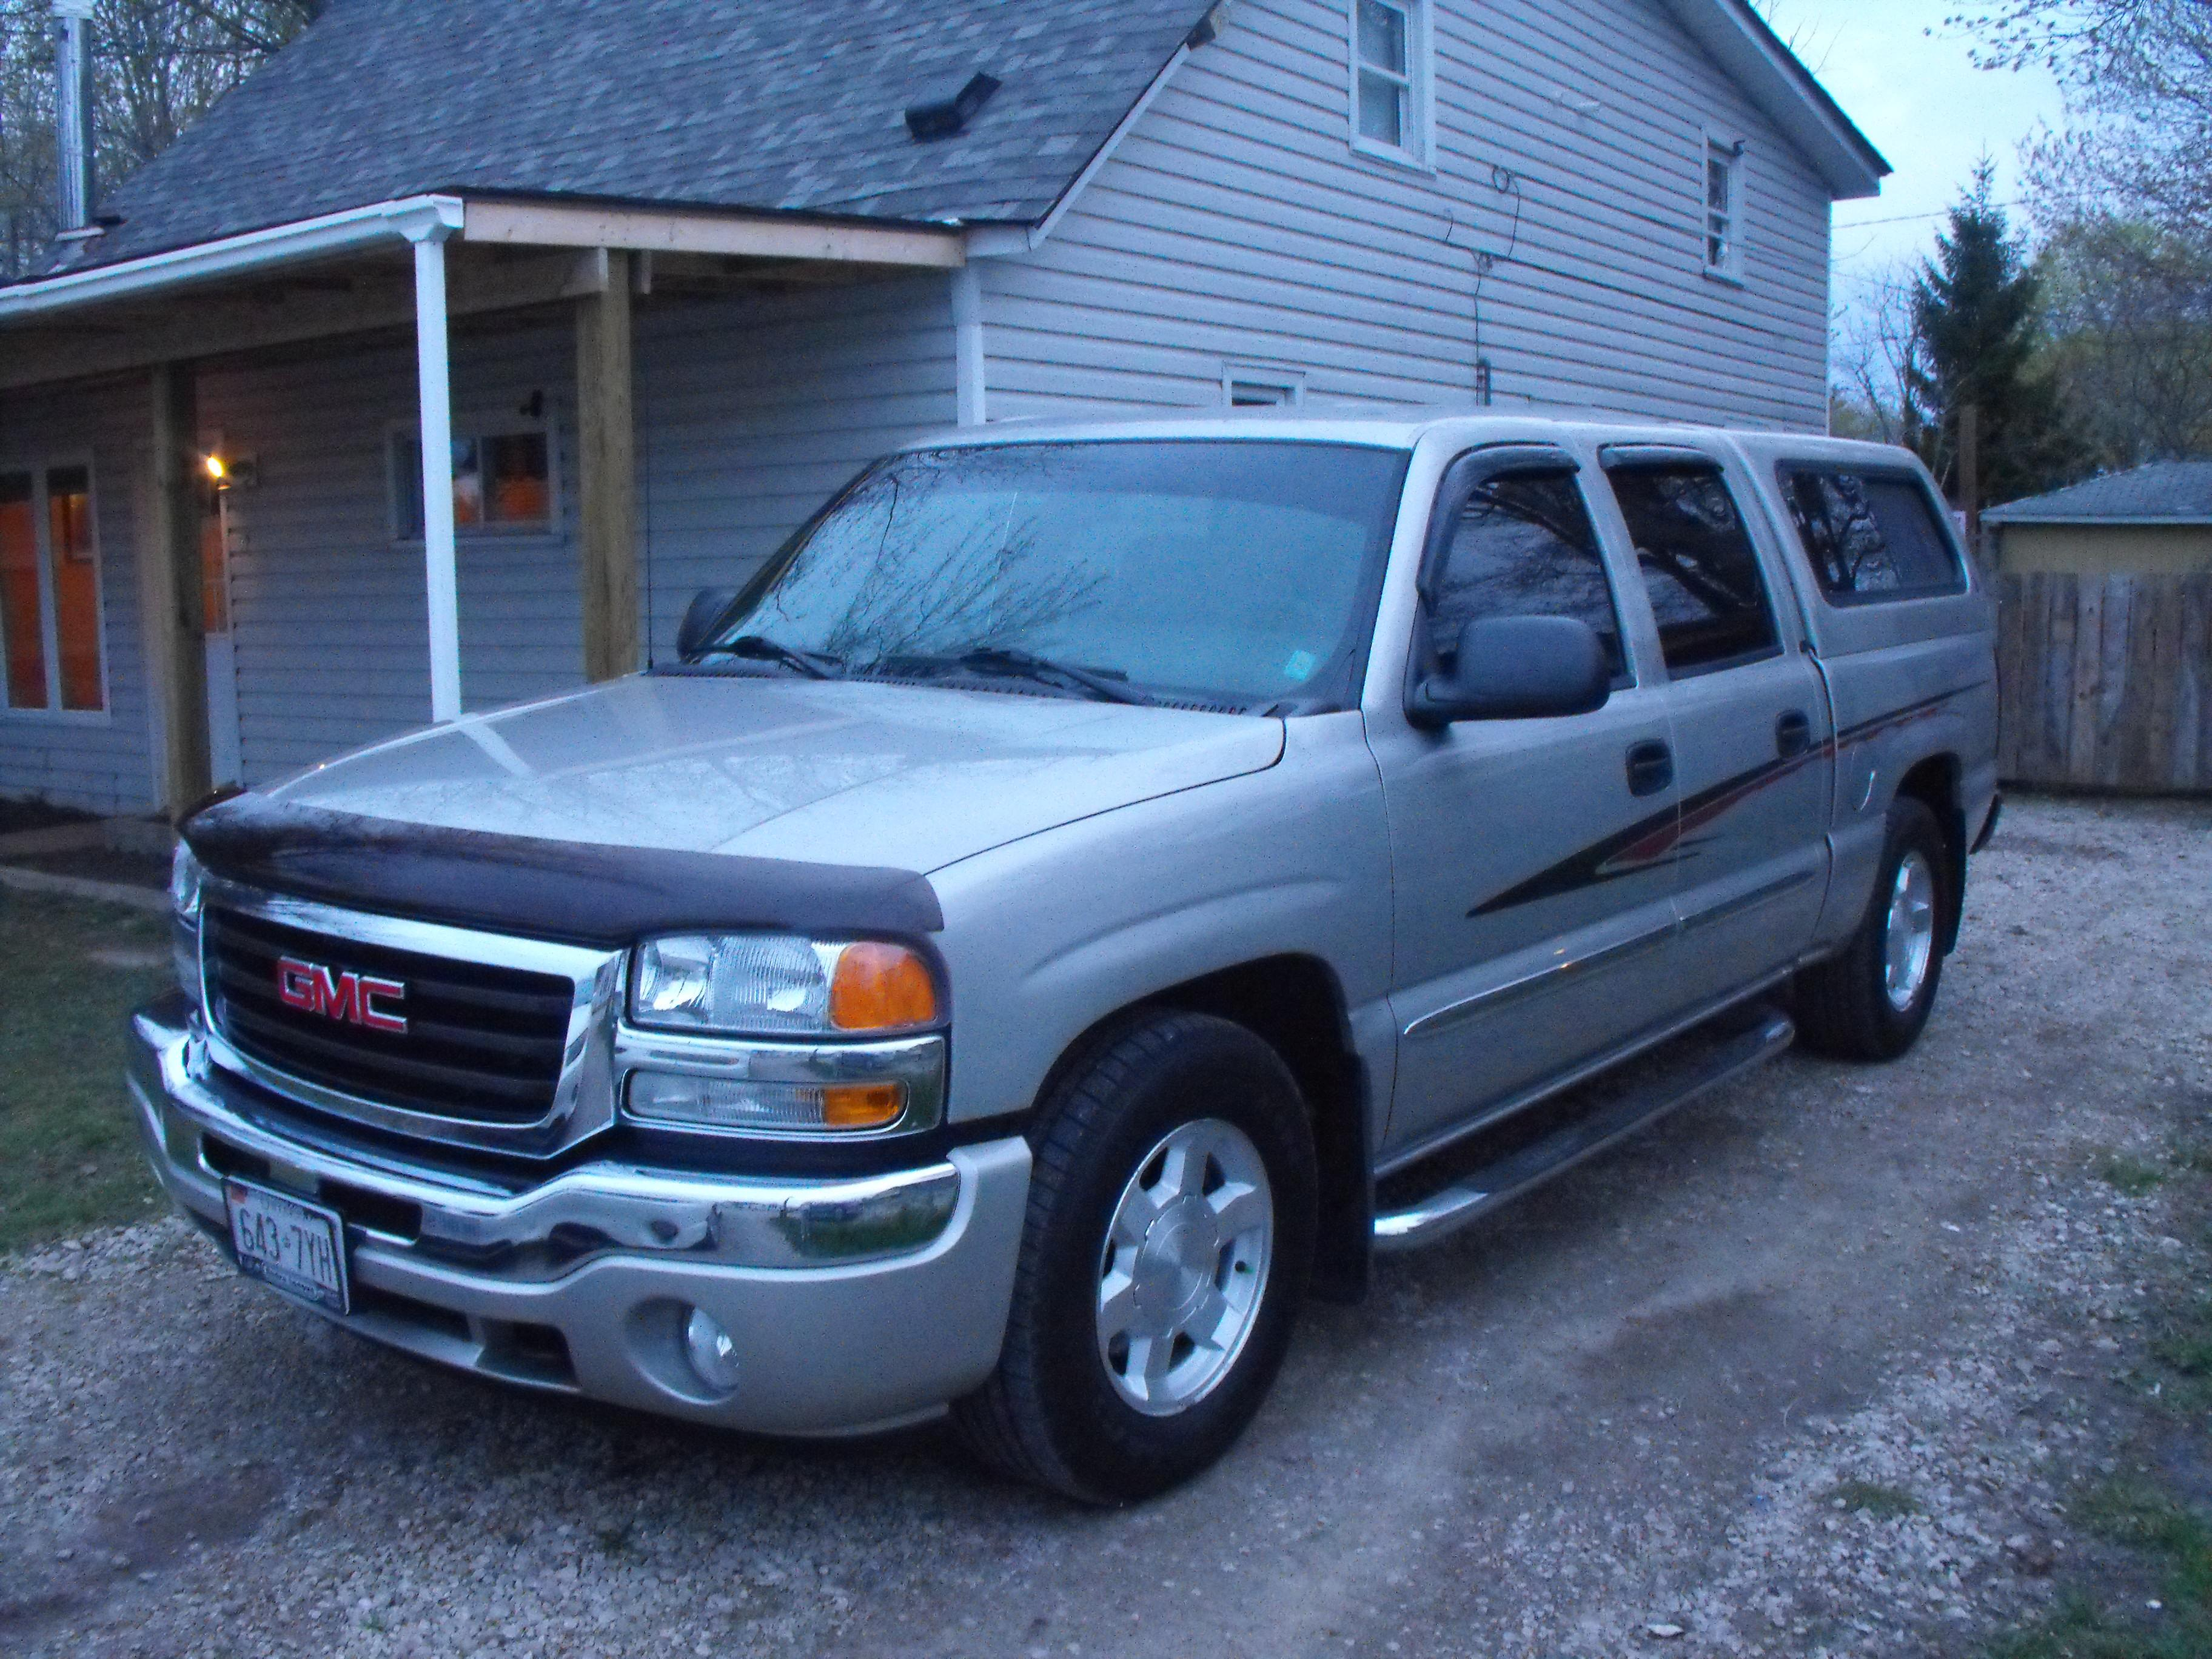 tamcam01 2005 gmc sierra 1500 crew cab specs photos modification info at cardomain. Black Bedroom Furniture Sets. Home Design Ideas